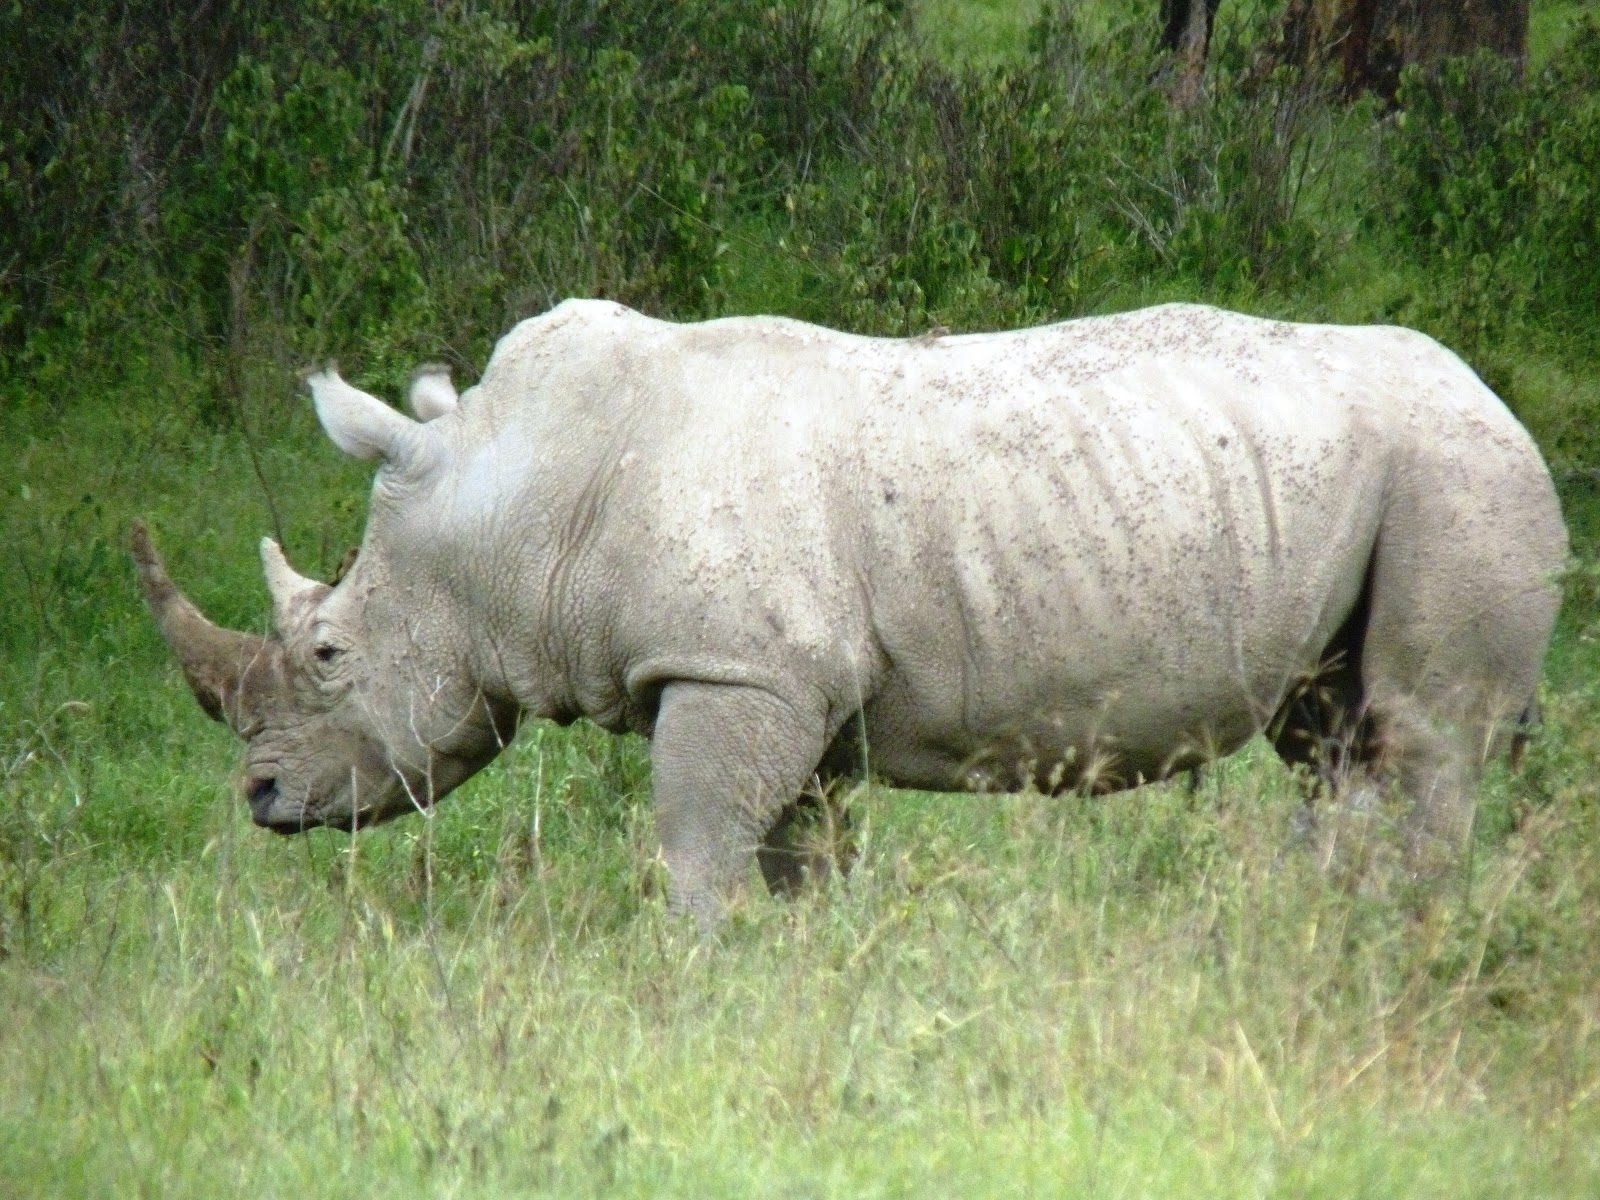 Rhinoceros in Kenya